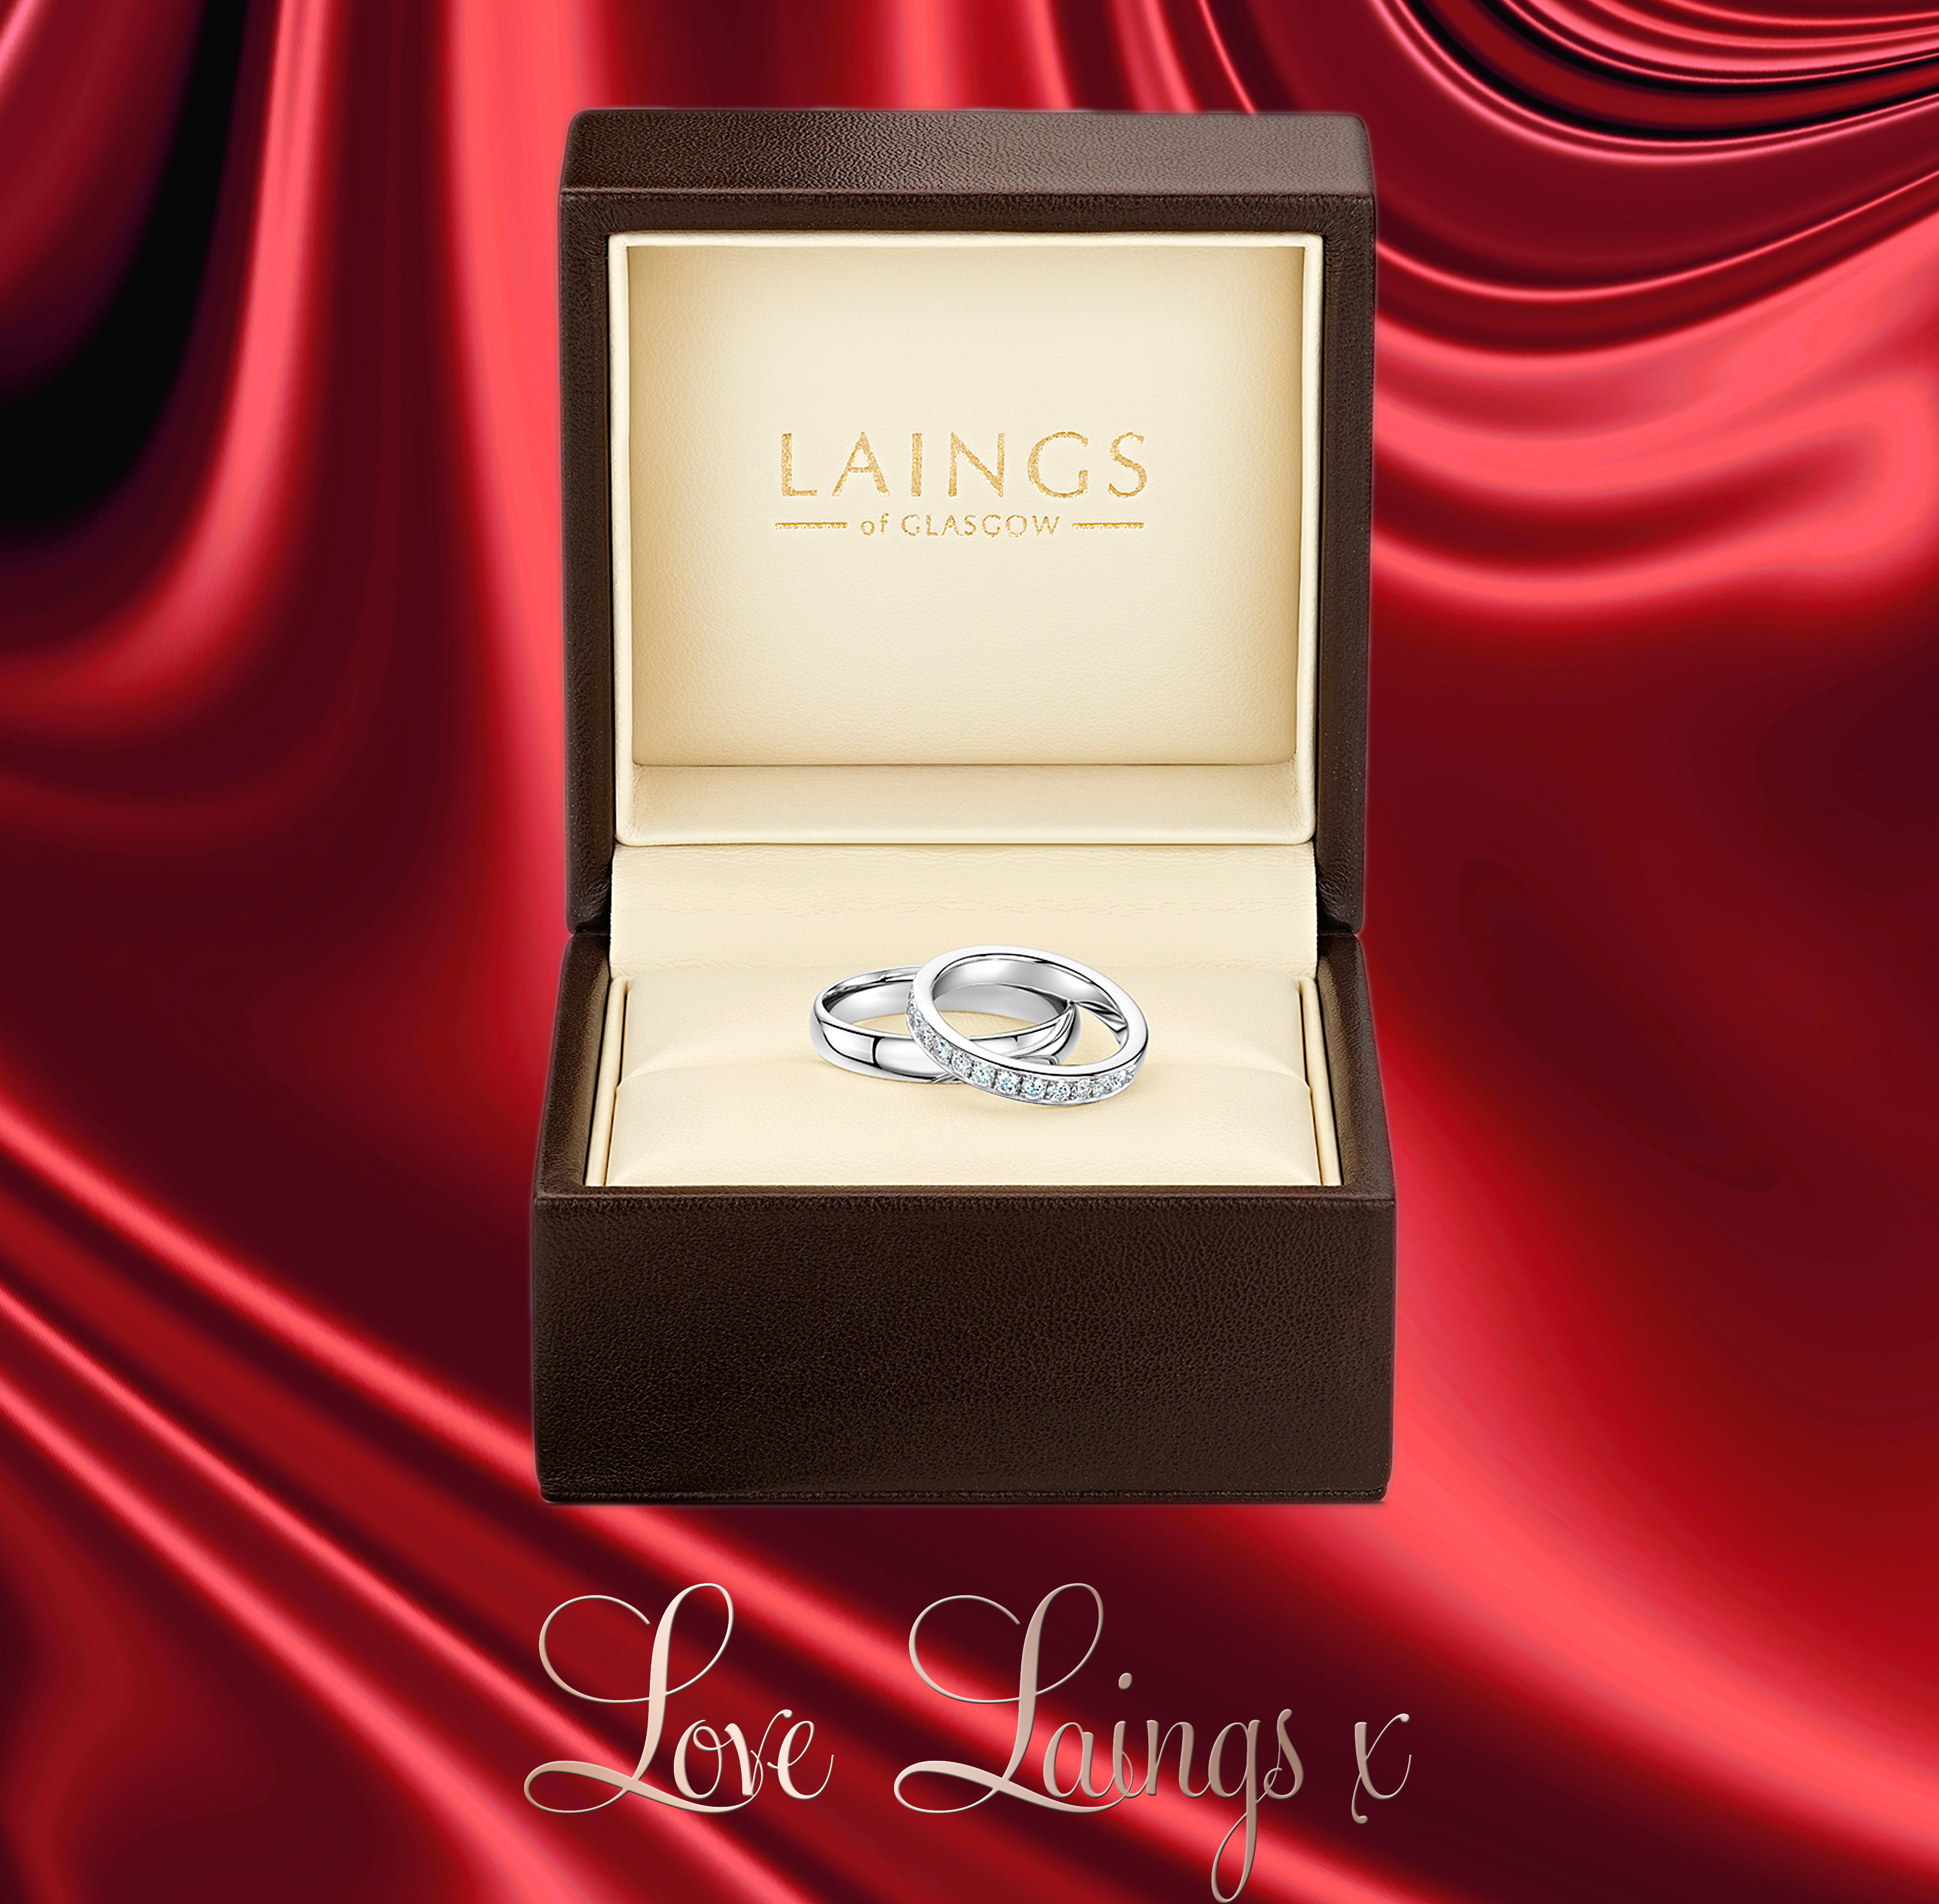 Luxury valentine 39 s gifts for her laings jewellers for Luxury gifts for her